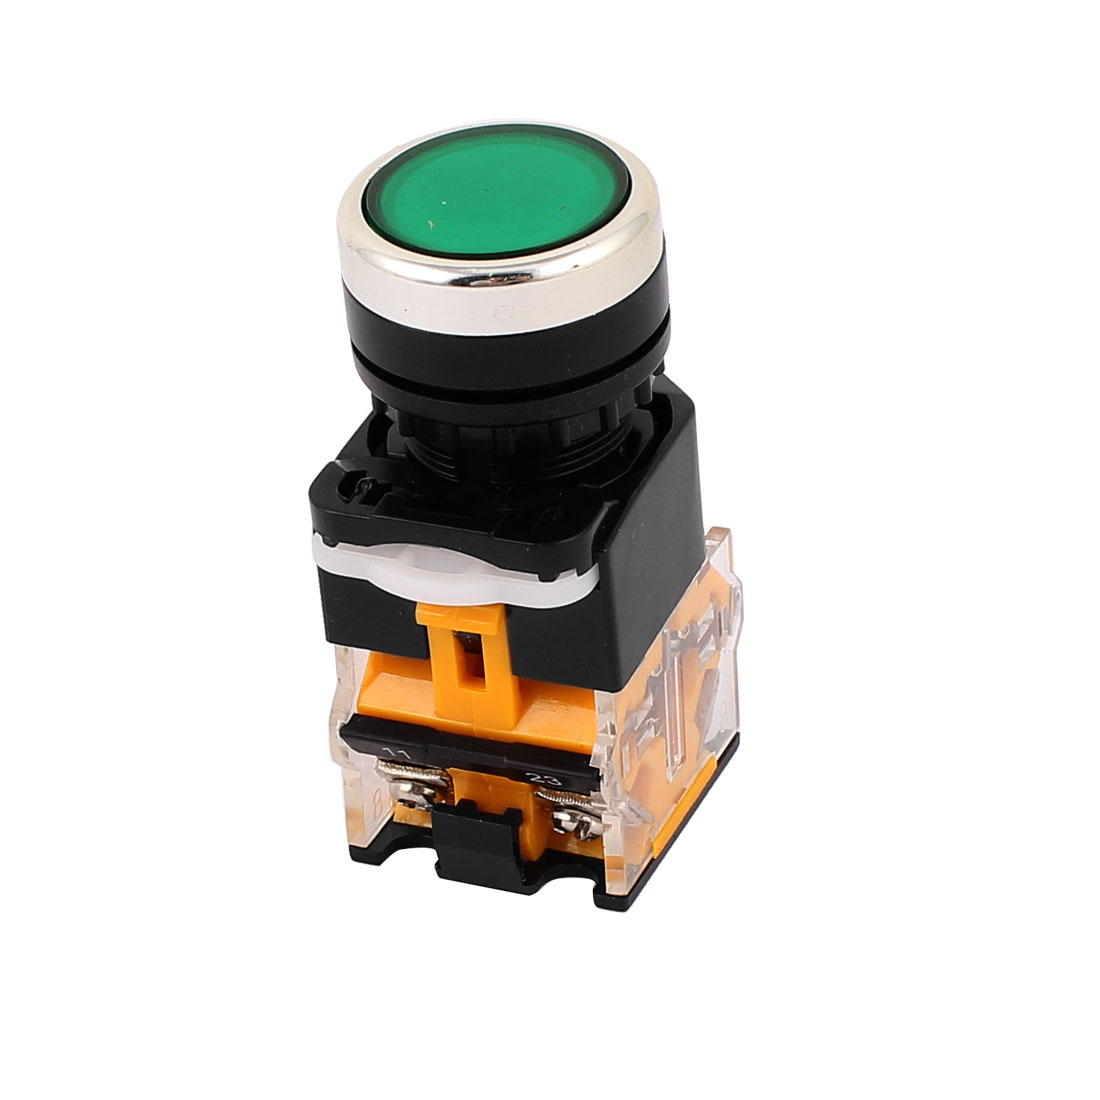 Ui 380V Ith 10A Green Cap 1NO 1NC DPST Momentary Push Button Switch